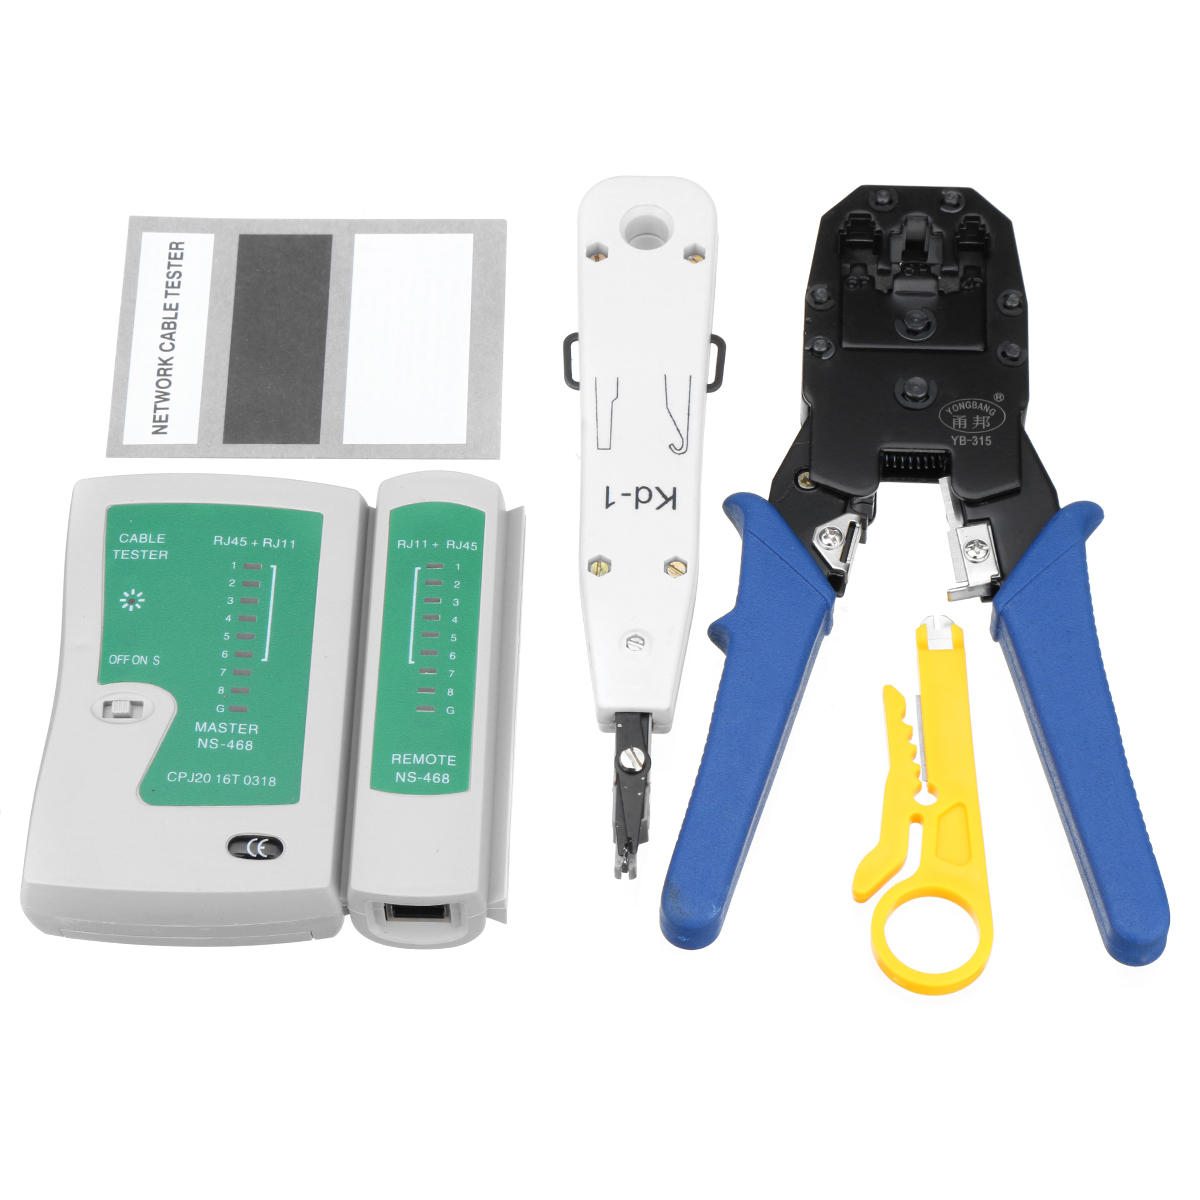 hight resolution of network ethernet lan rj11 rj45 cat5 cat6 cable tester wire tracker tool kit cod